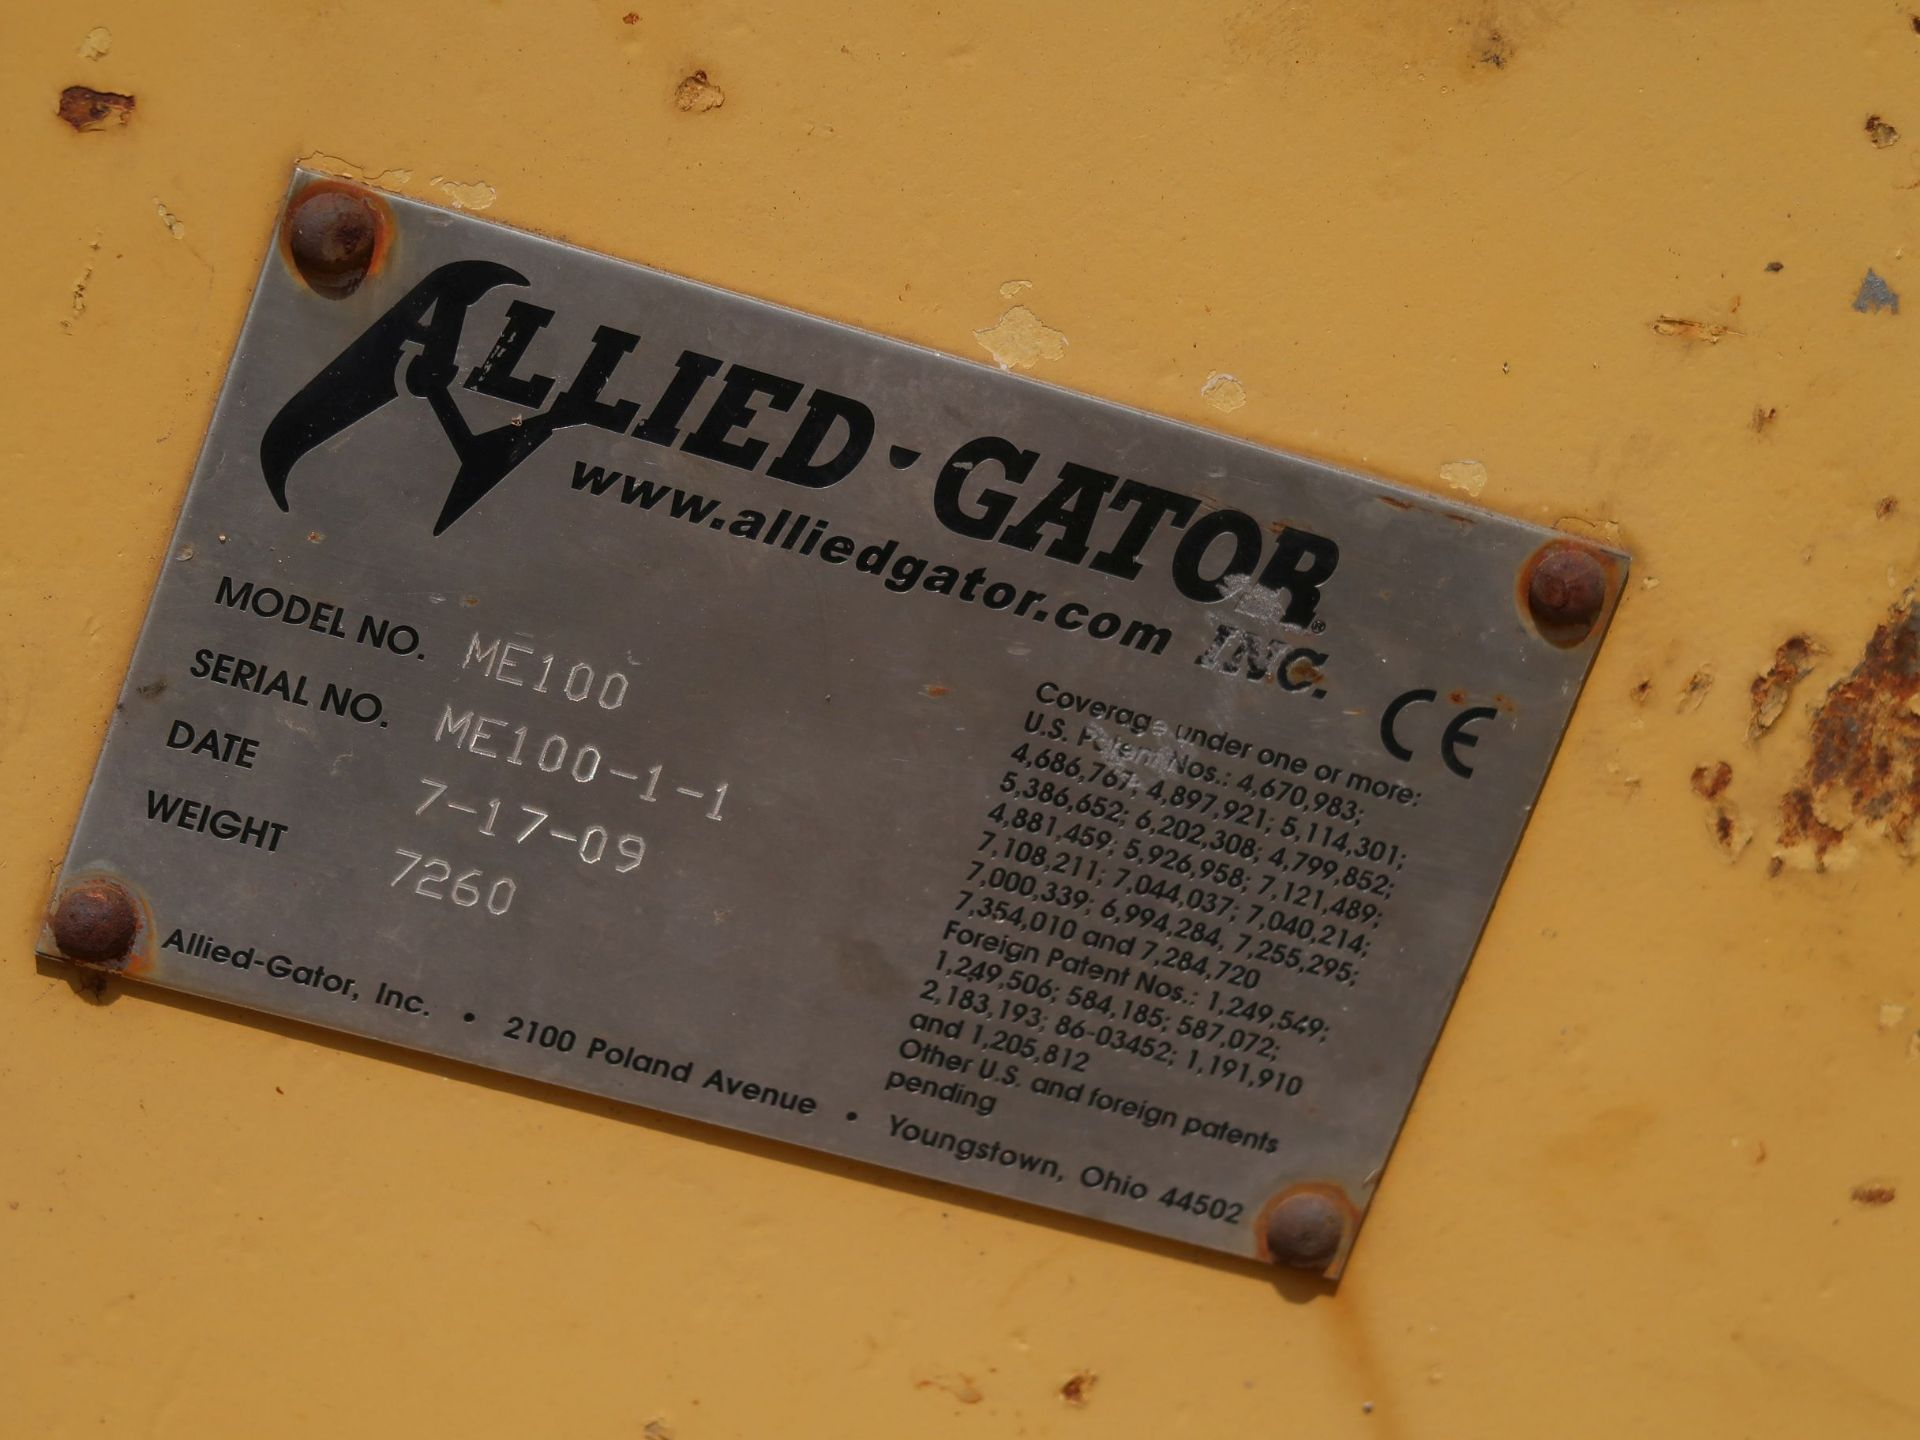 Lot 1024 - ALLIED GATOR MODEL ME100 MAGNET EXTENSION ATTACHMENT WITH NATIONAL ELECTRIC ELECTRO MAGNET (